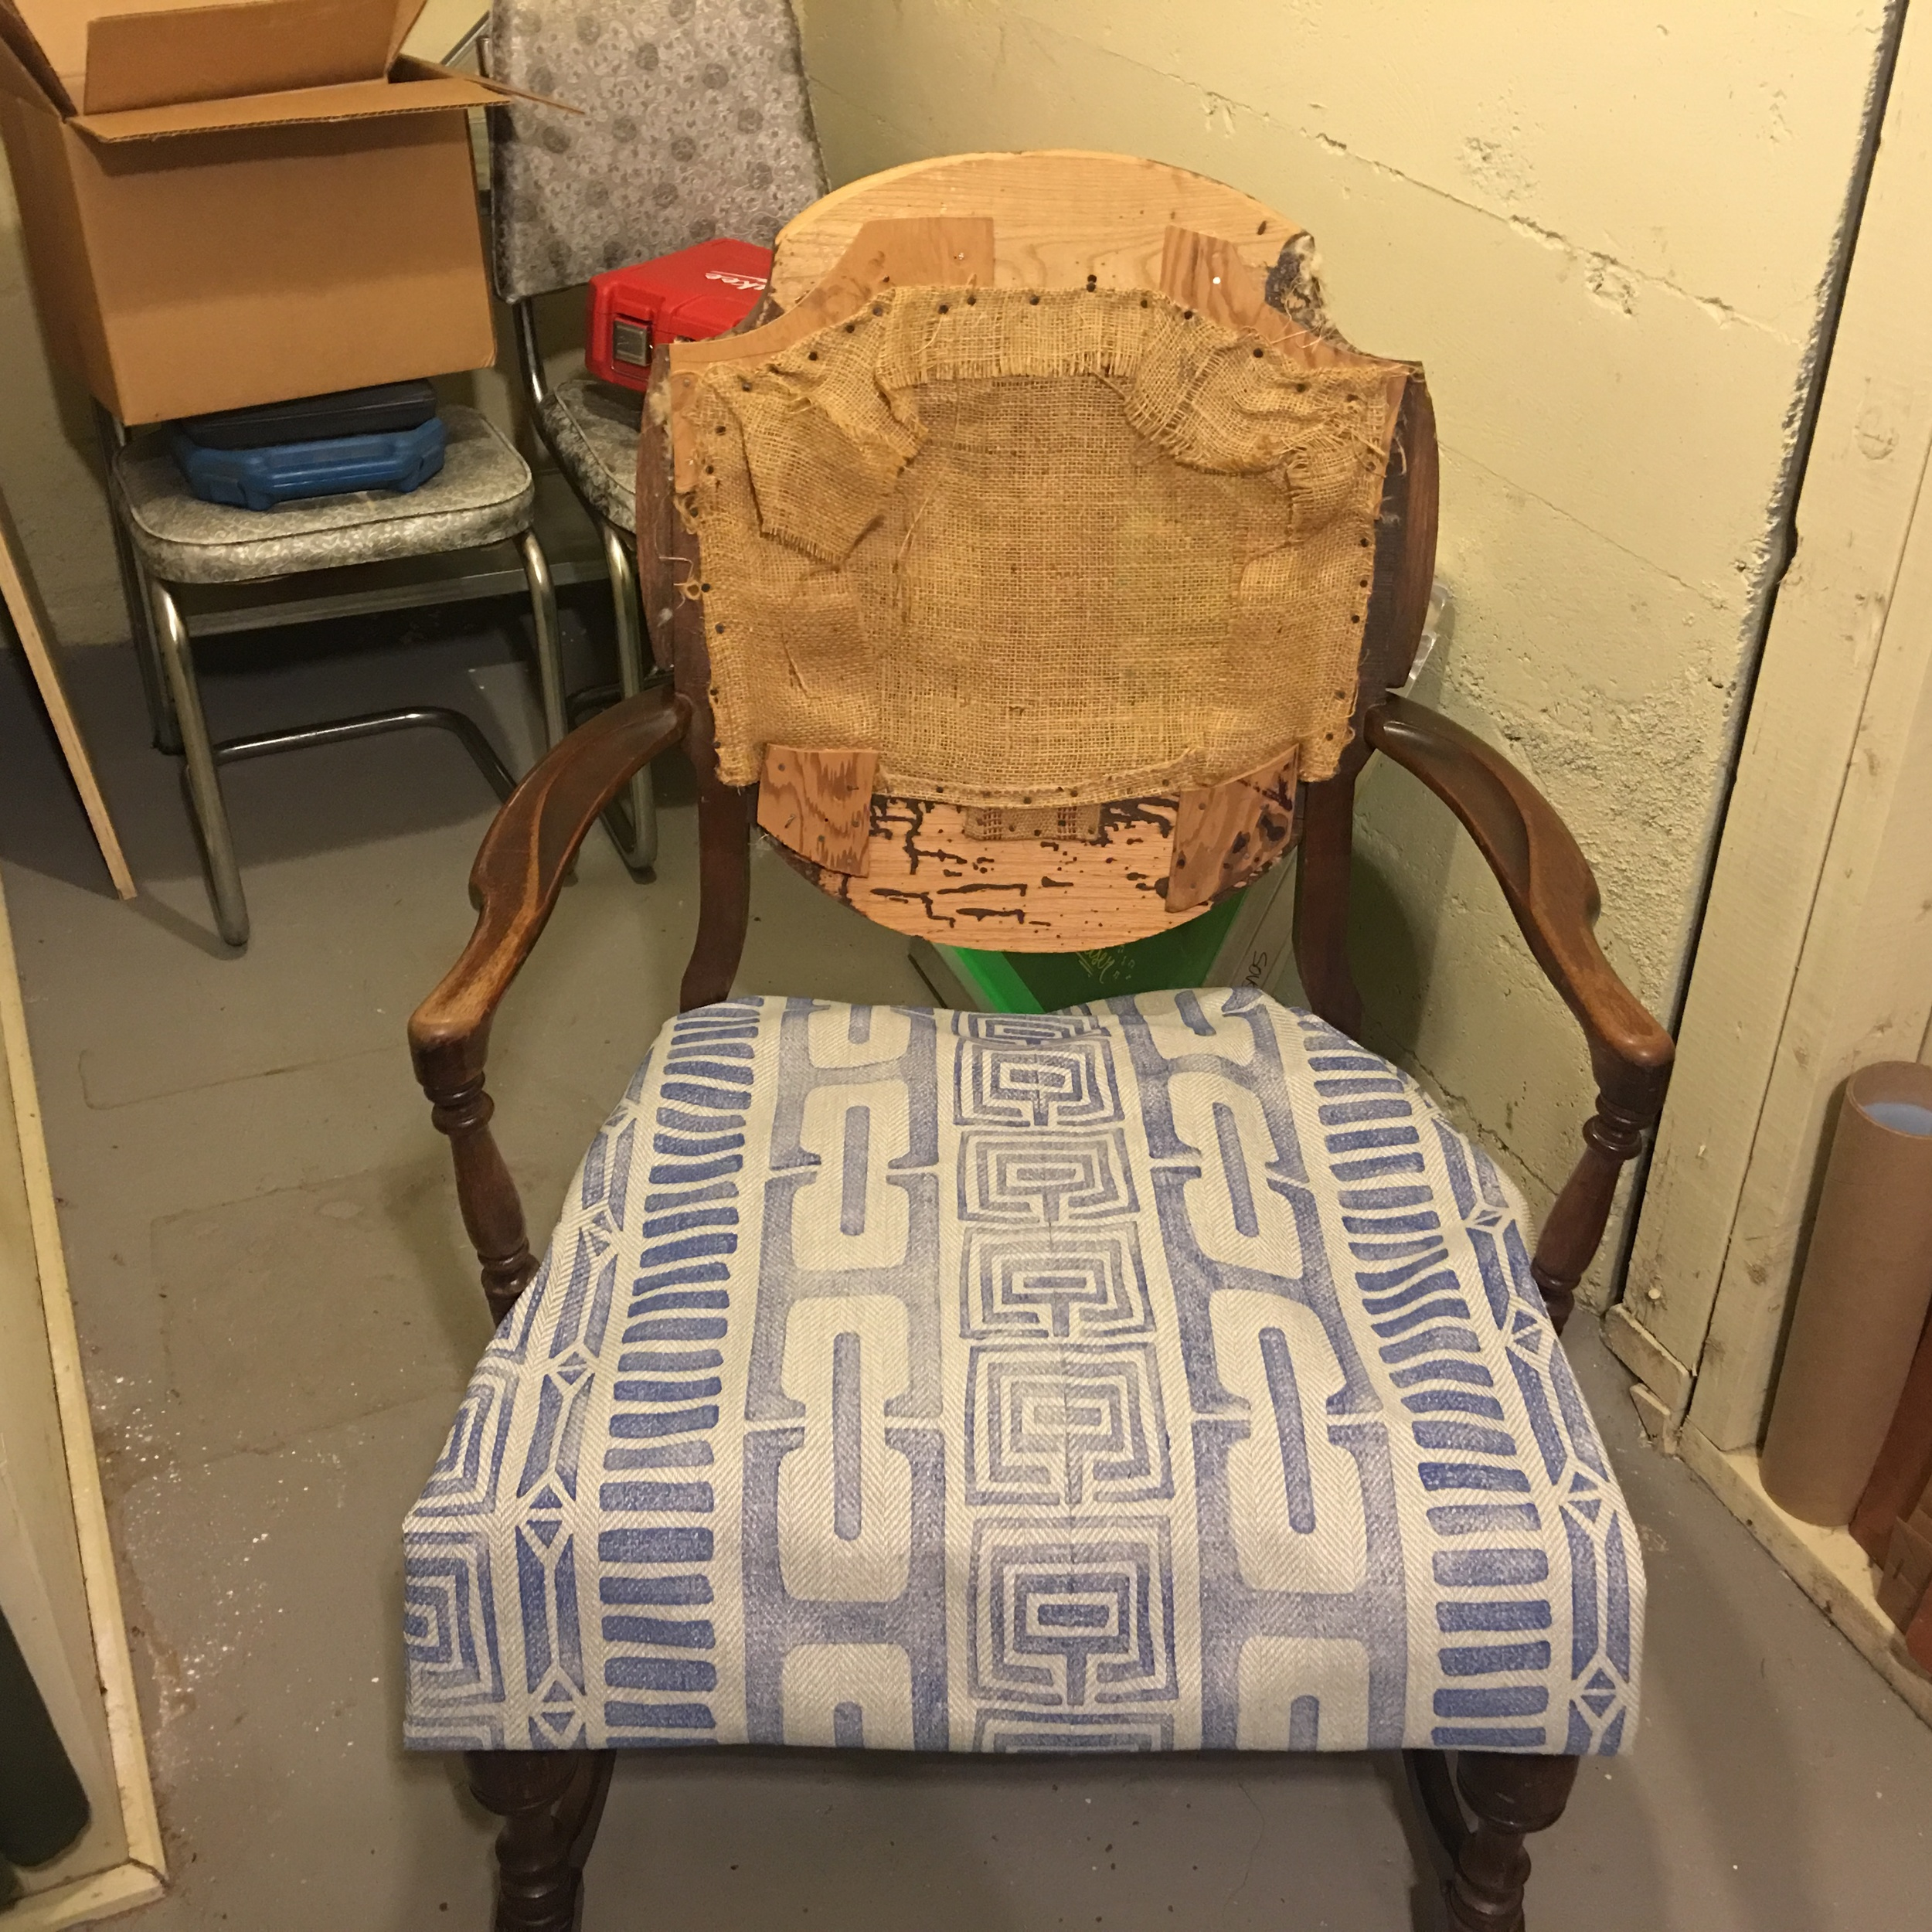 Testing the fabric on the chair